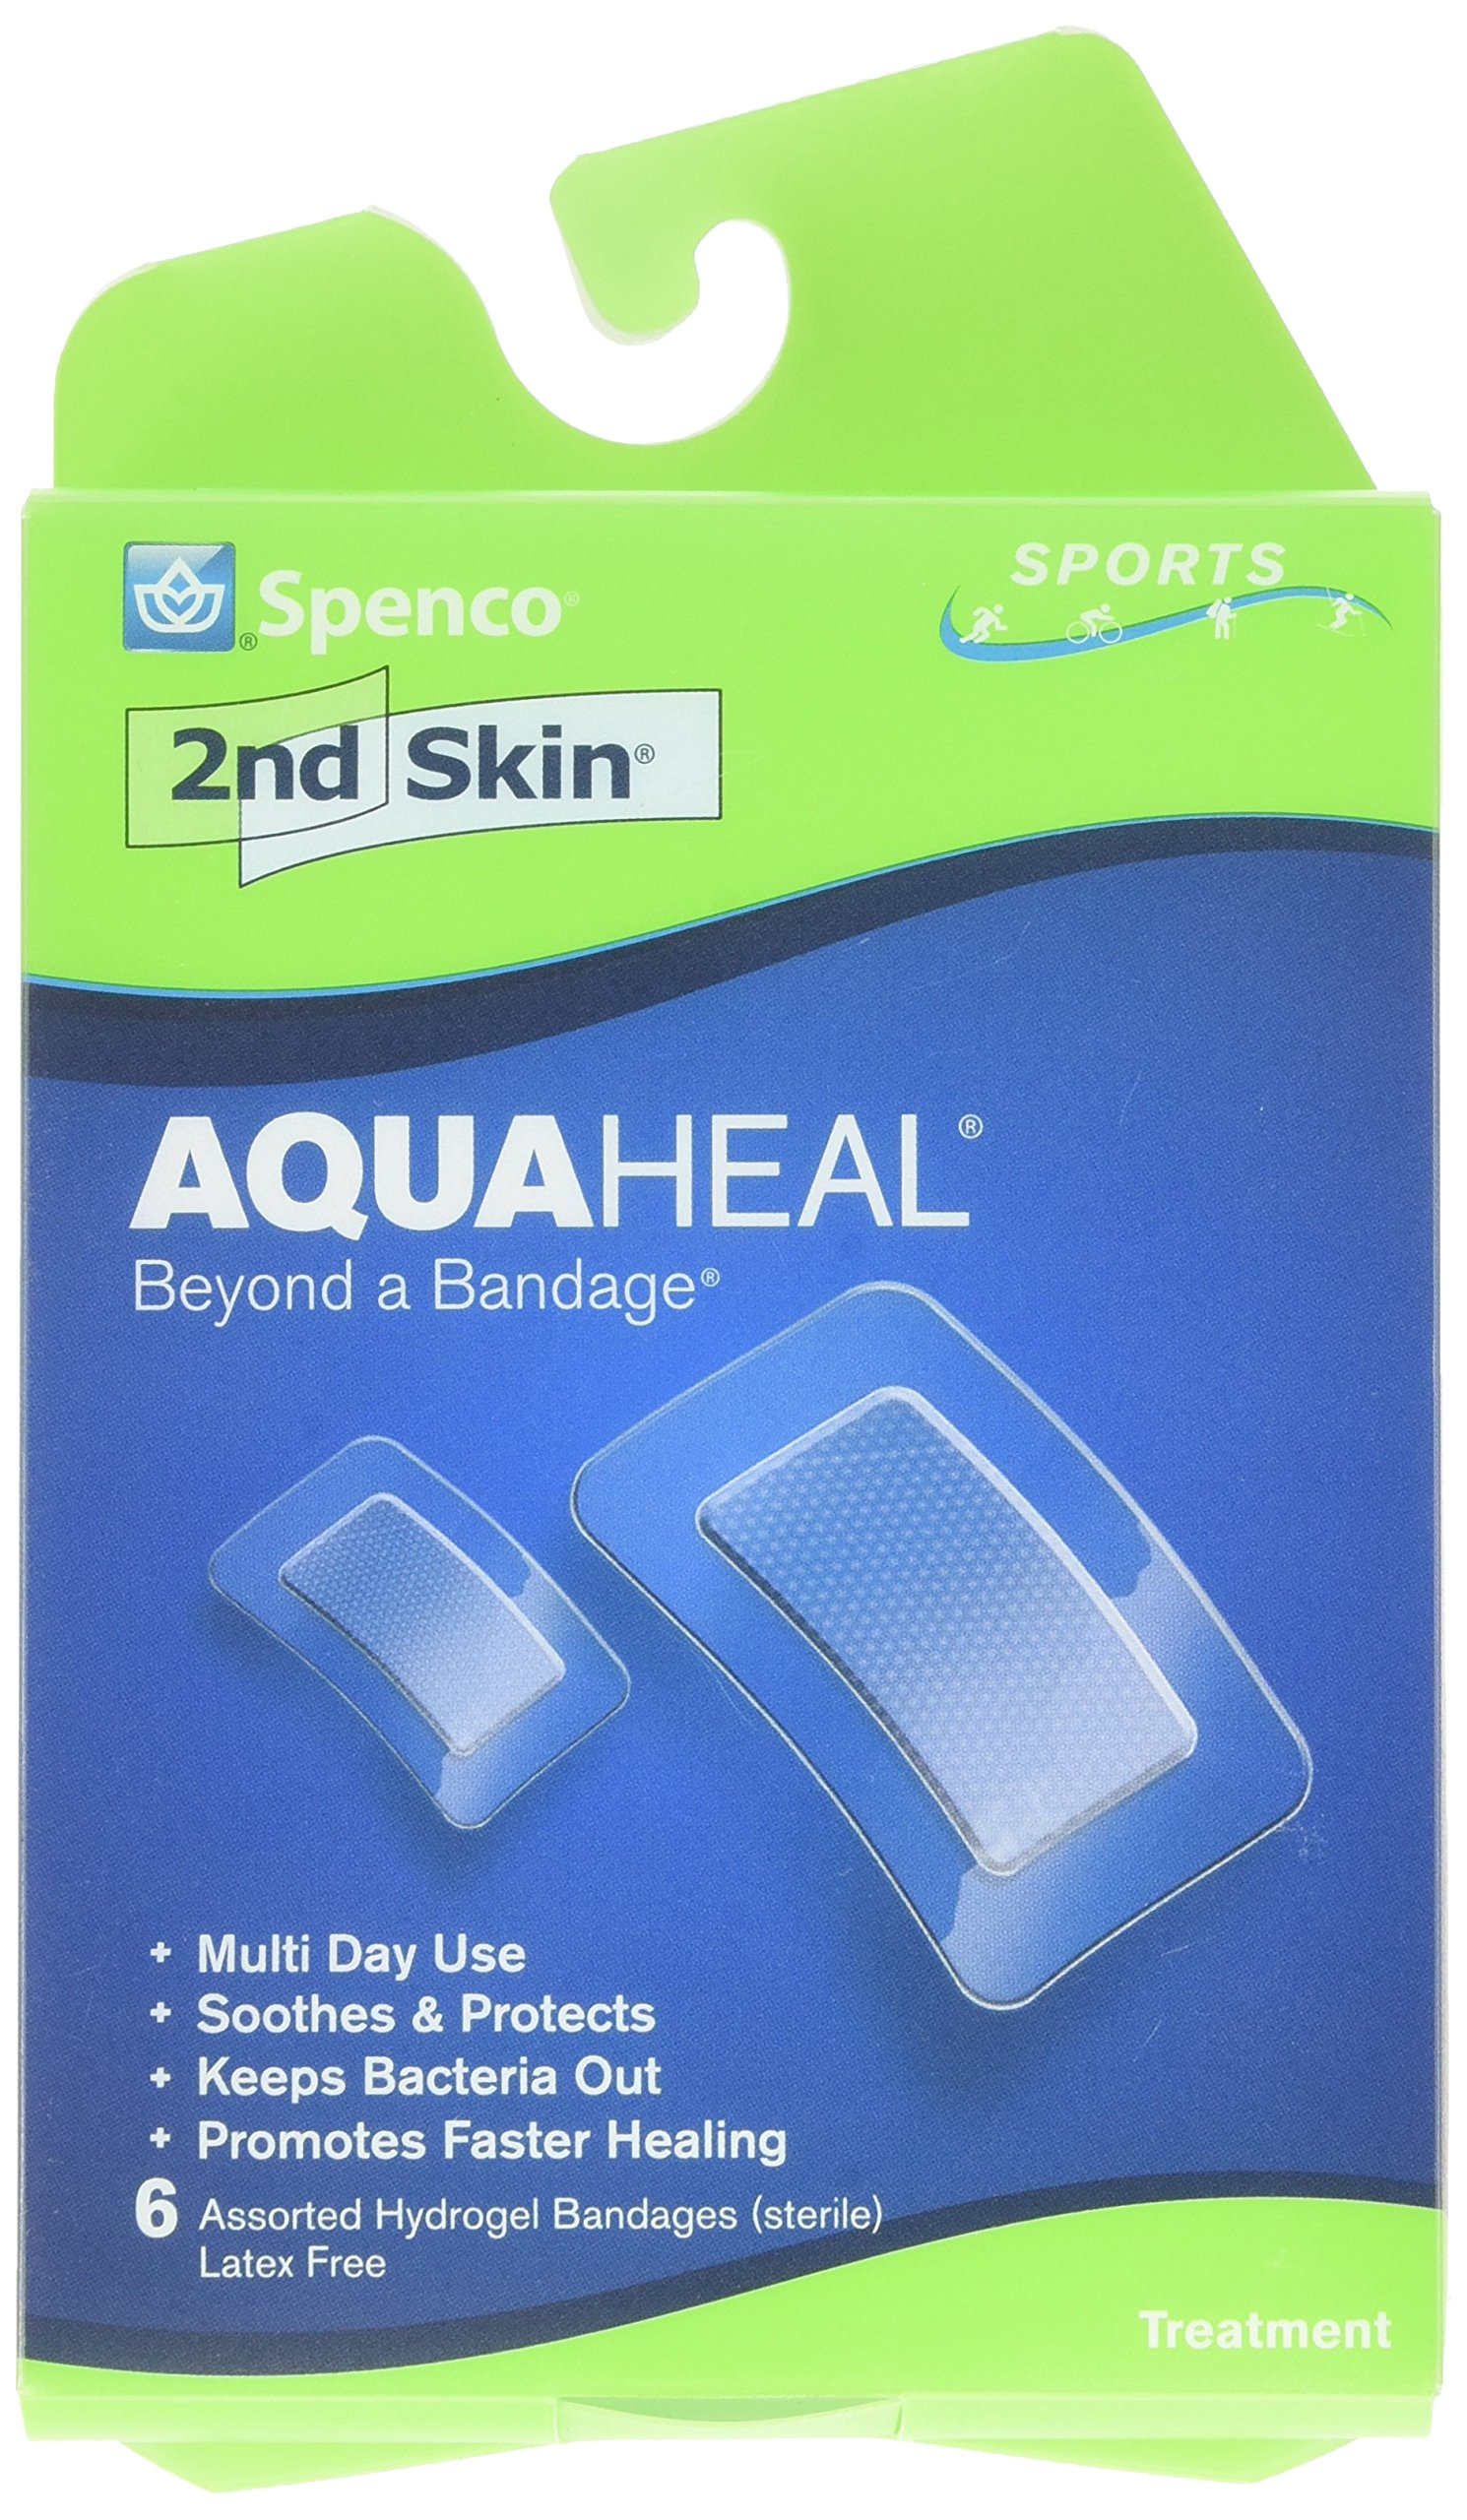 Spenco 2nd Skin Aquaheal Hydrogel Bandages, Sports Mixed Size 6-Count